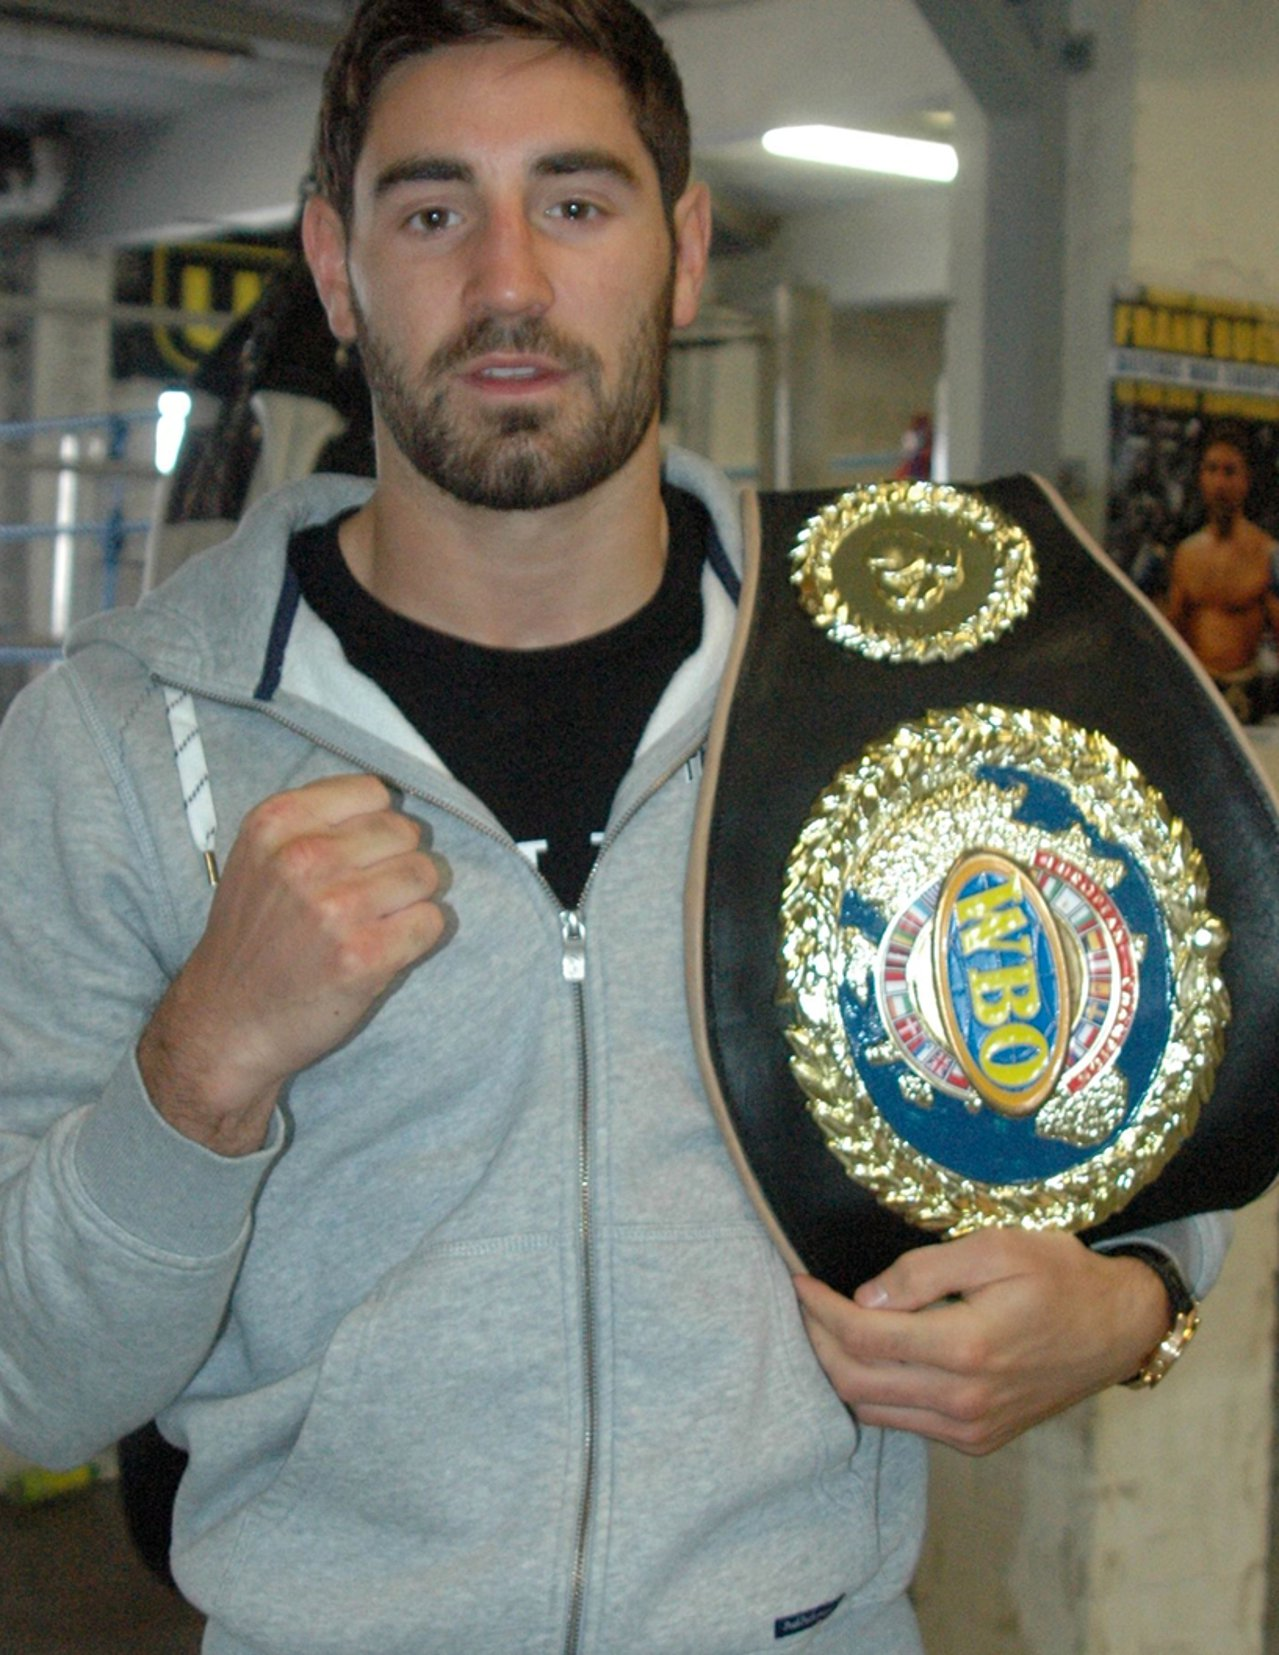 Buglioni: 'I'll be looking to make a real s